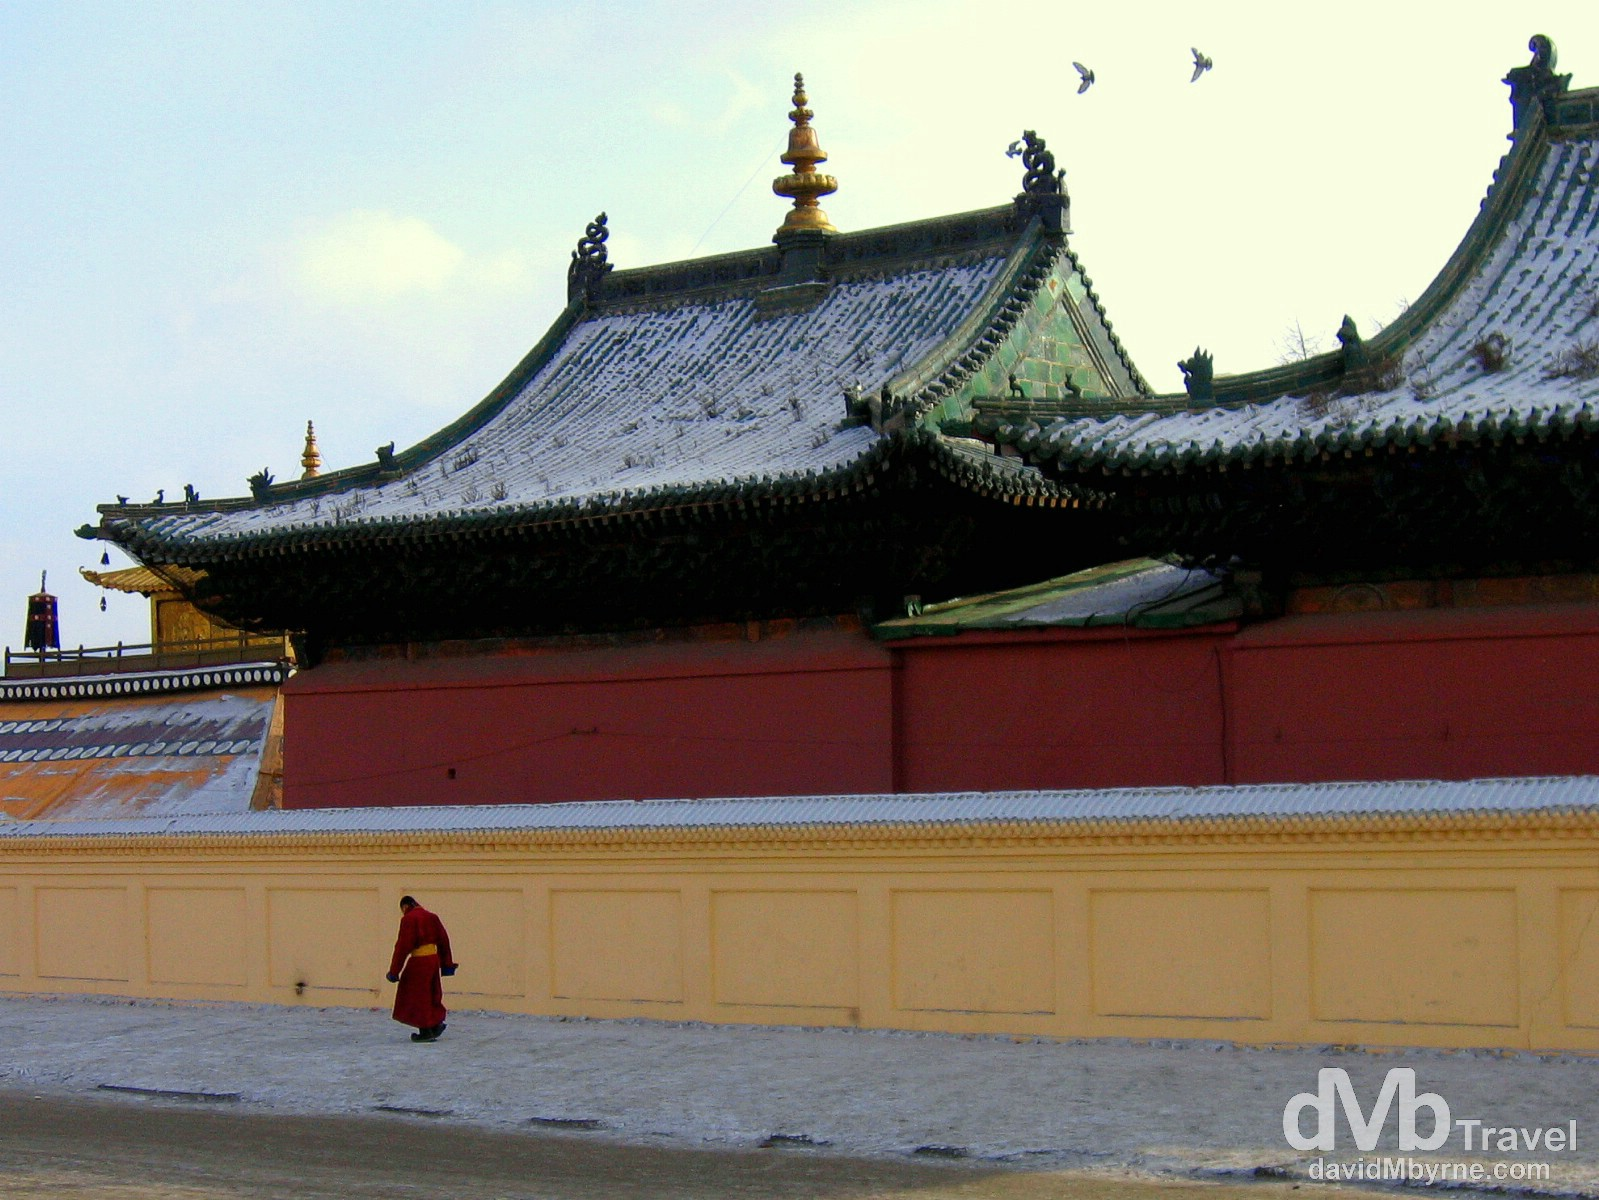 A lama (Buddhist monk) walks past the walls of the Ochirdary Sum (temple) in the grounds of Gandantegchinlen Khiid (monastery), Ulan Batar, Mongolia. February 15th 2006.